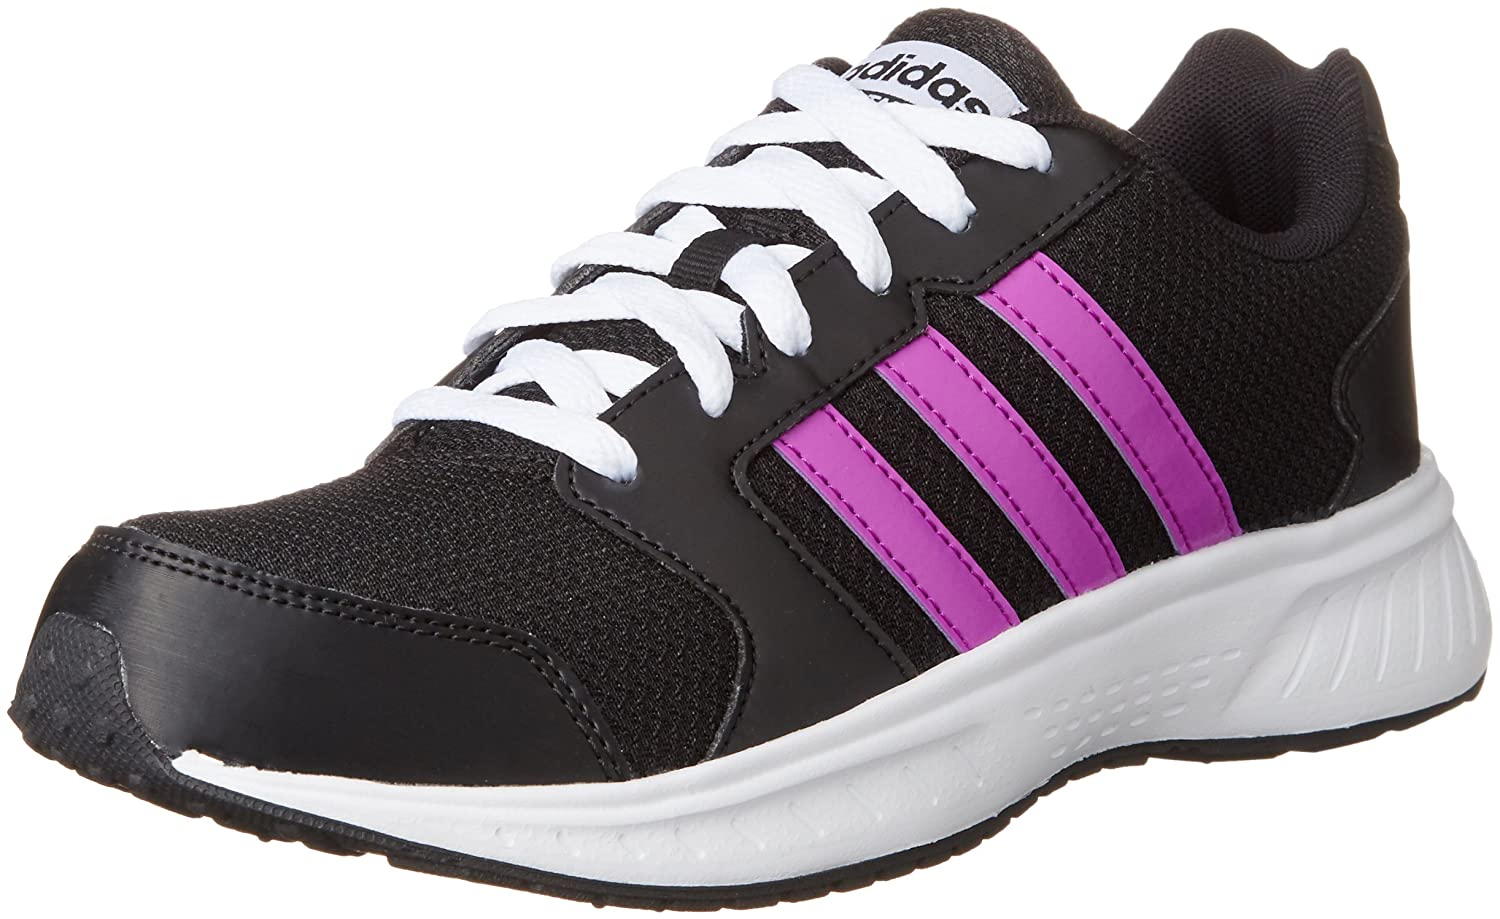 cheap for discount f244d 7f311 adidas Damen Vs Star W Turnschuhe 38 23 EUBlack (Negbas  Pursho   Plamat) - associate-degree.de